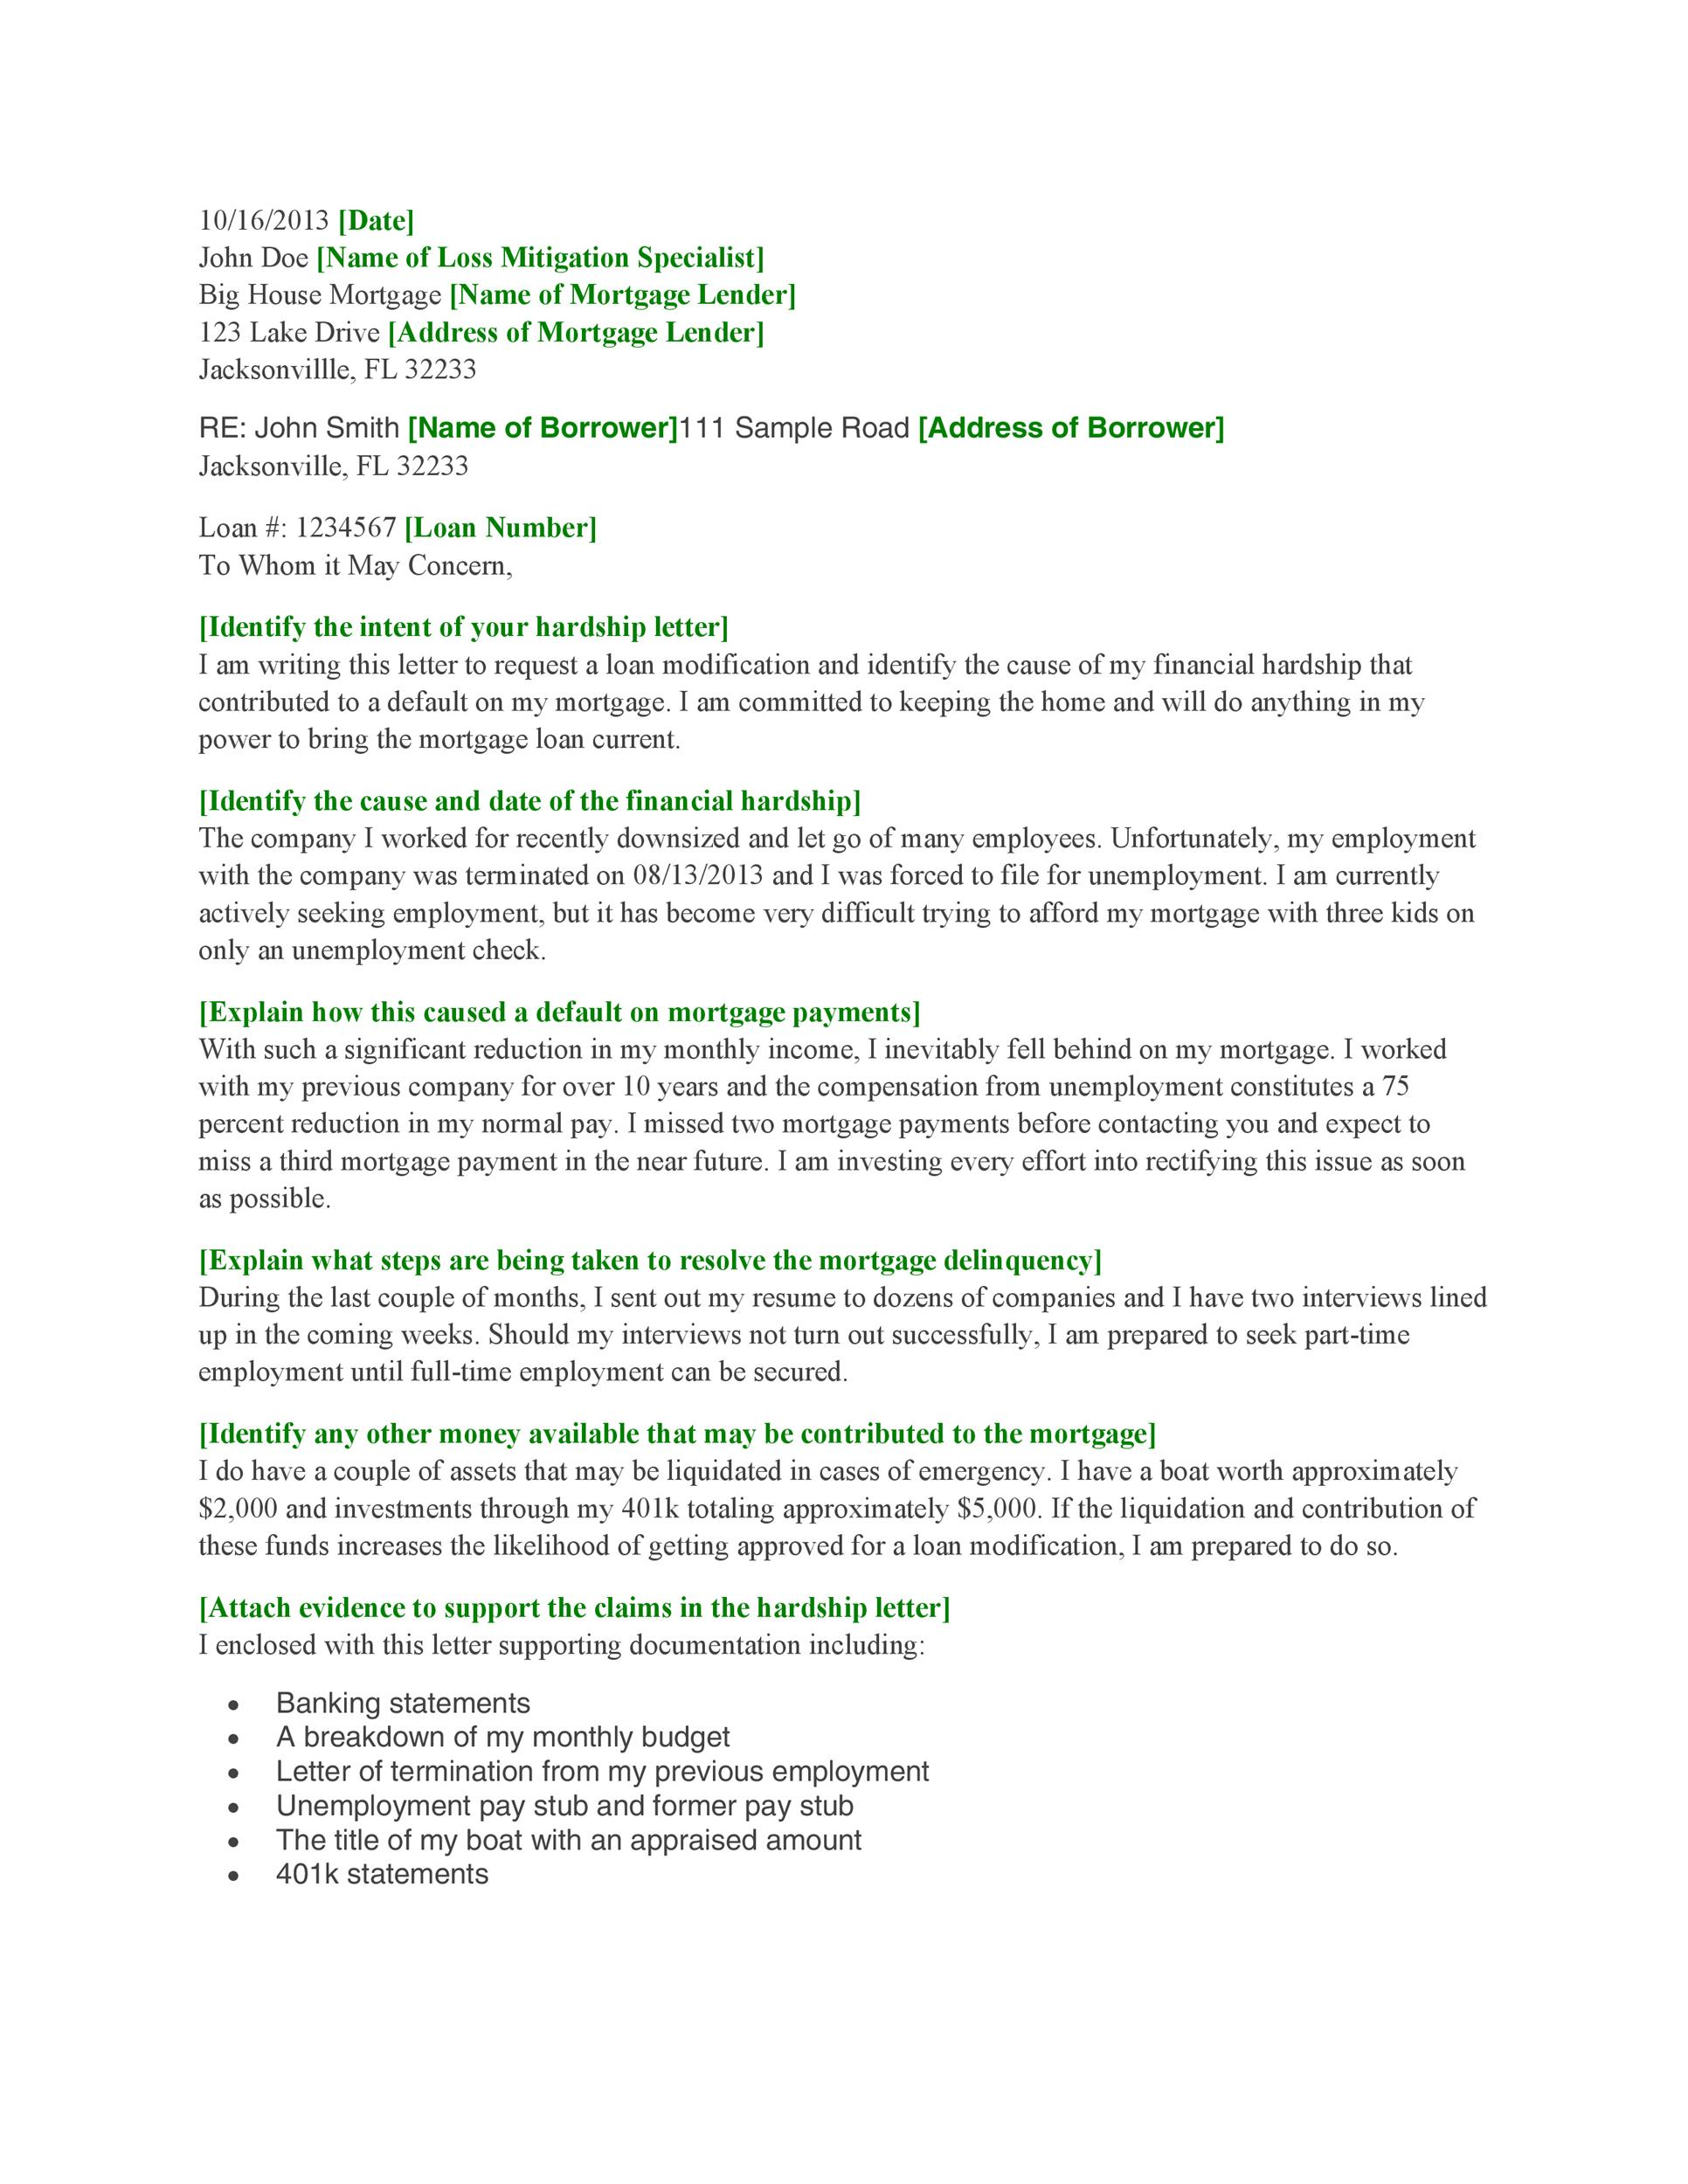 35 Simple Hardship Letters Financial For Mortgage For